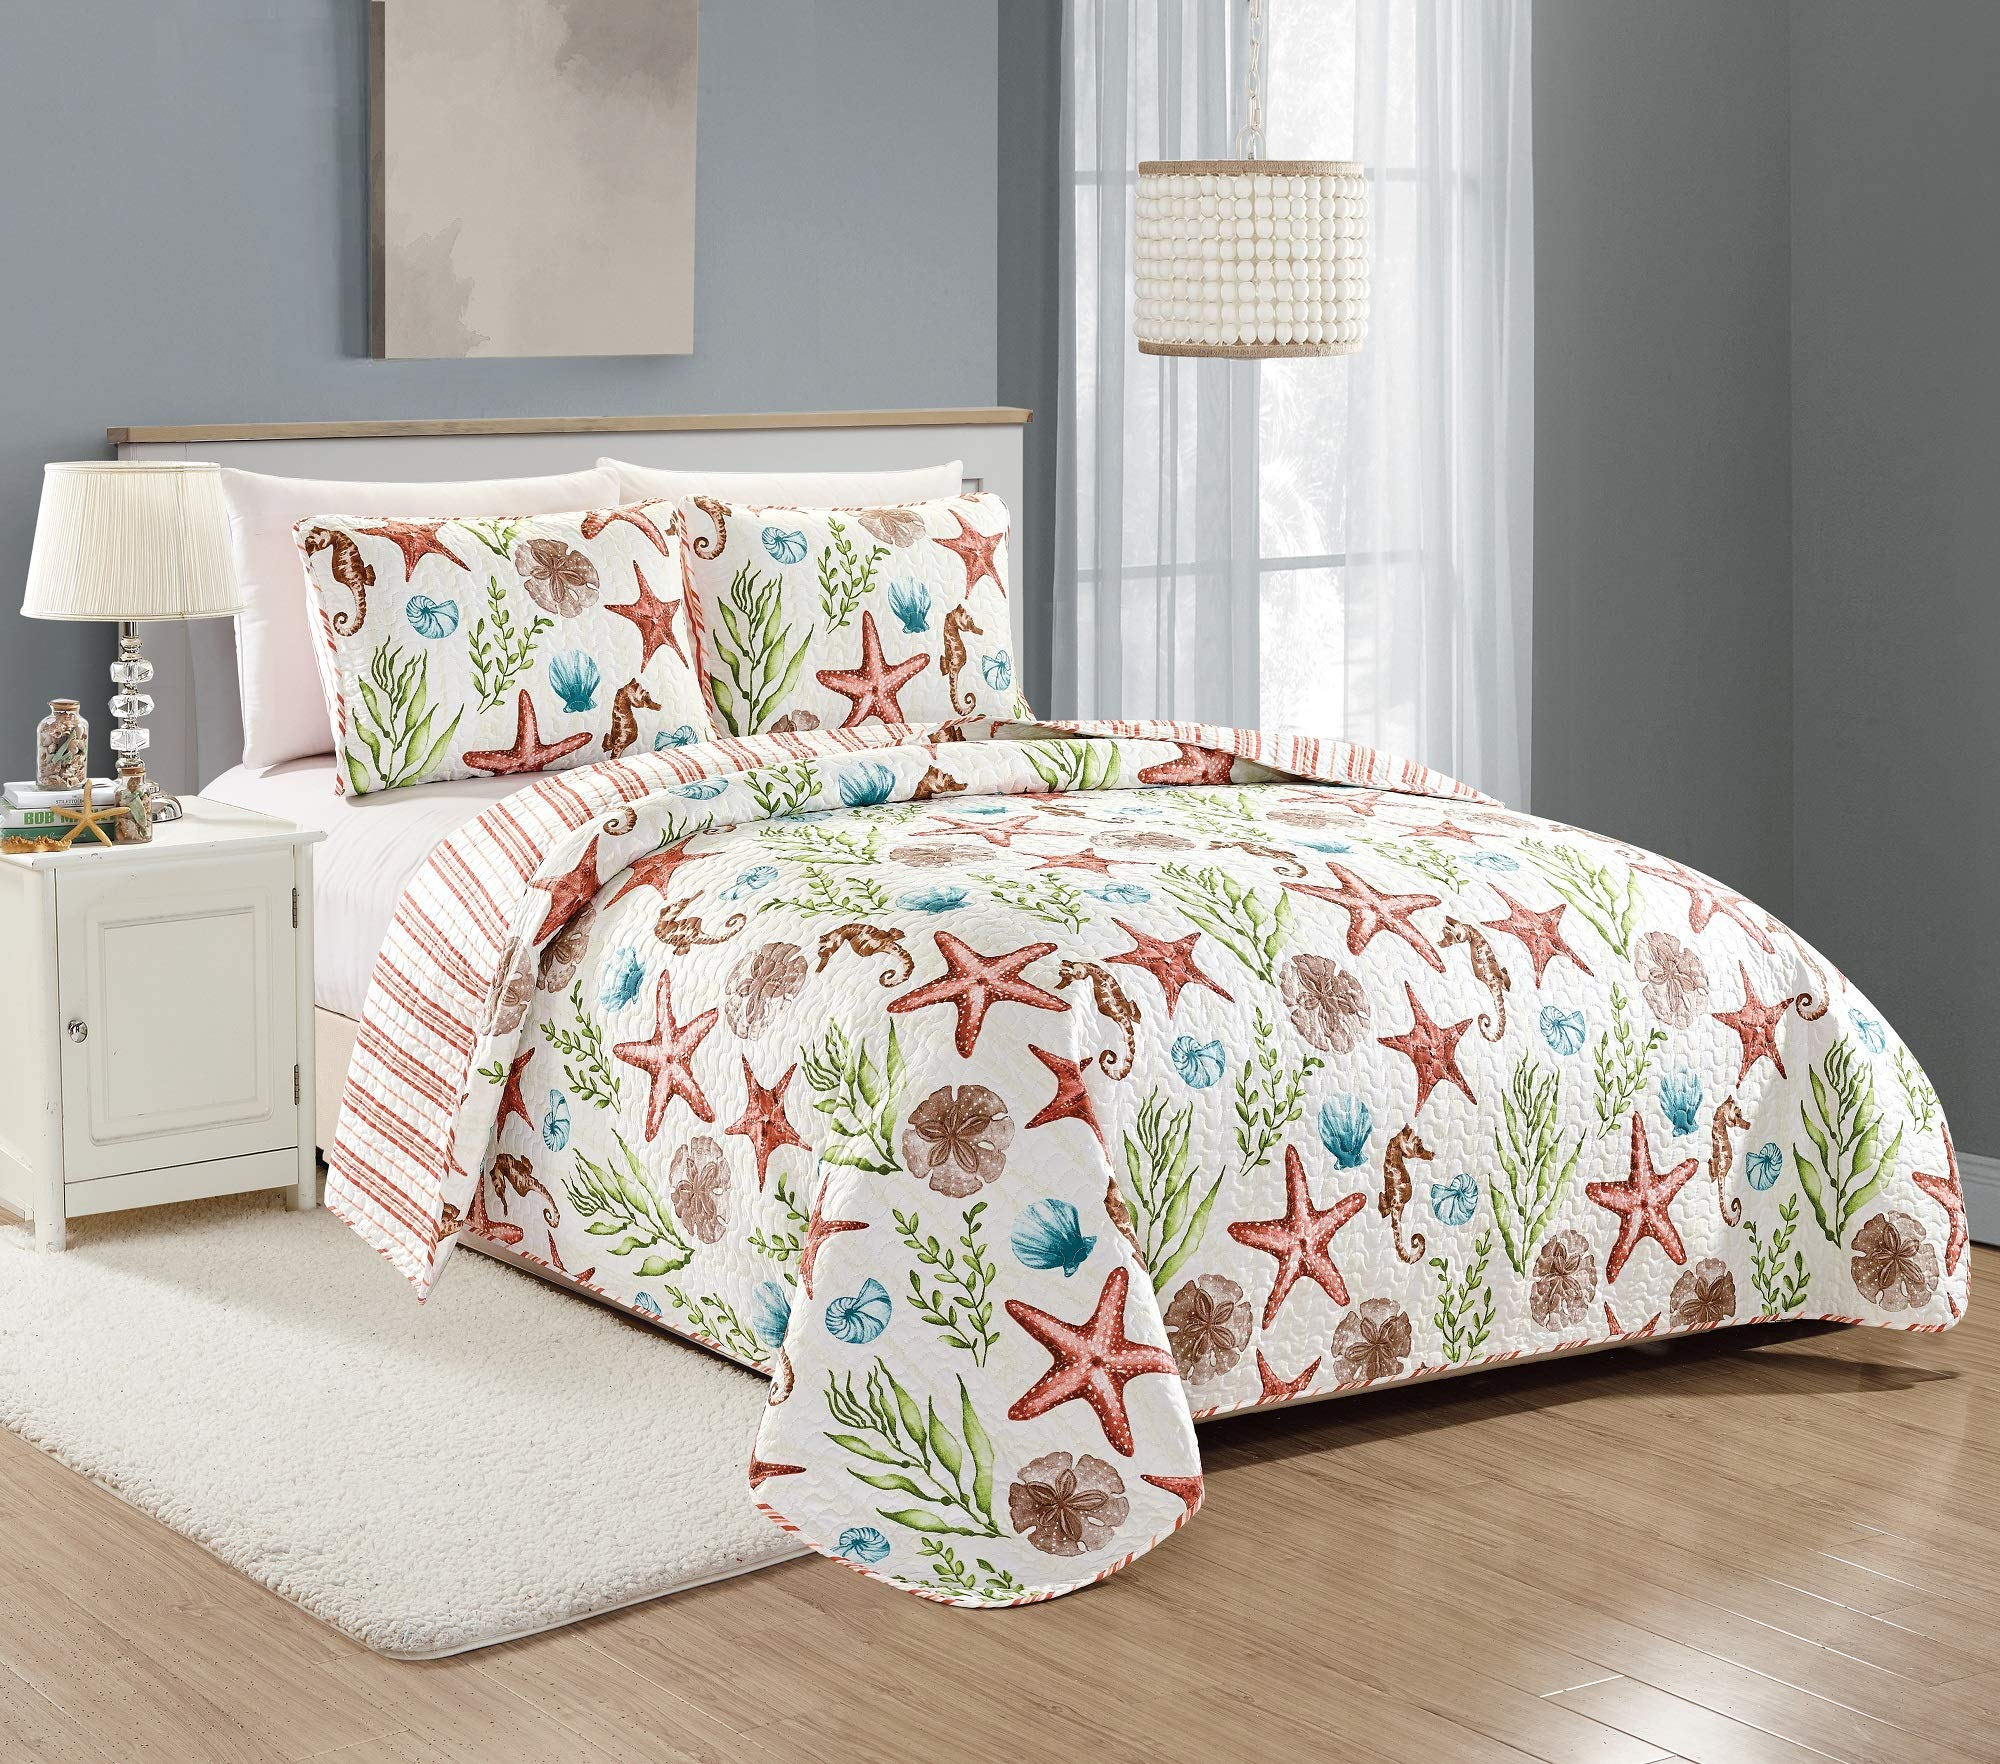 Great Bay Home Castaway Coastal Collection 3 Piece Quilt Set with Shams. Reversible Beach Theme Bedspread Coverlet. Machine Washable. (Full/Queen, Multi) by Great Bay Home (Image #5)